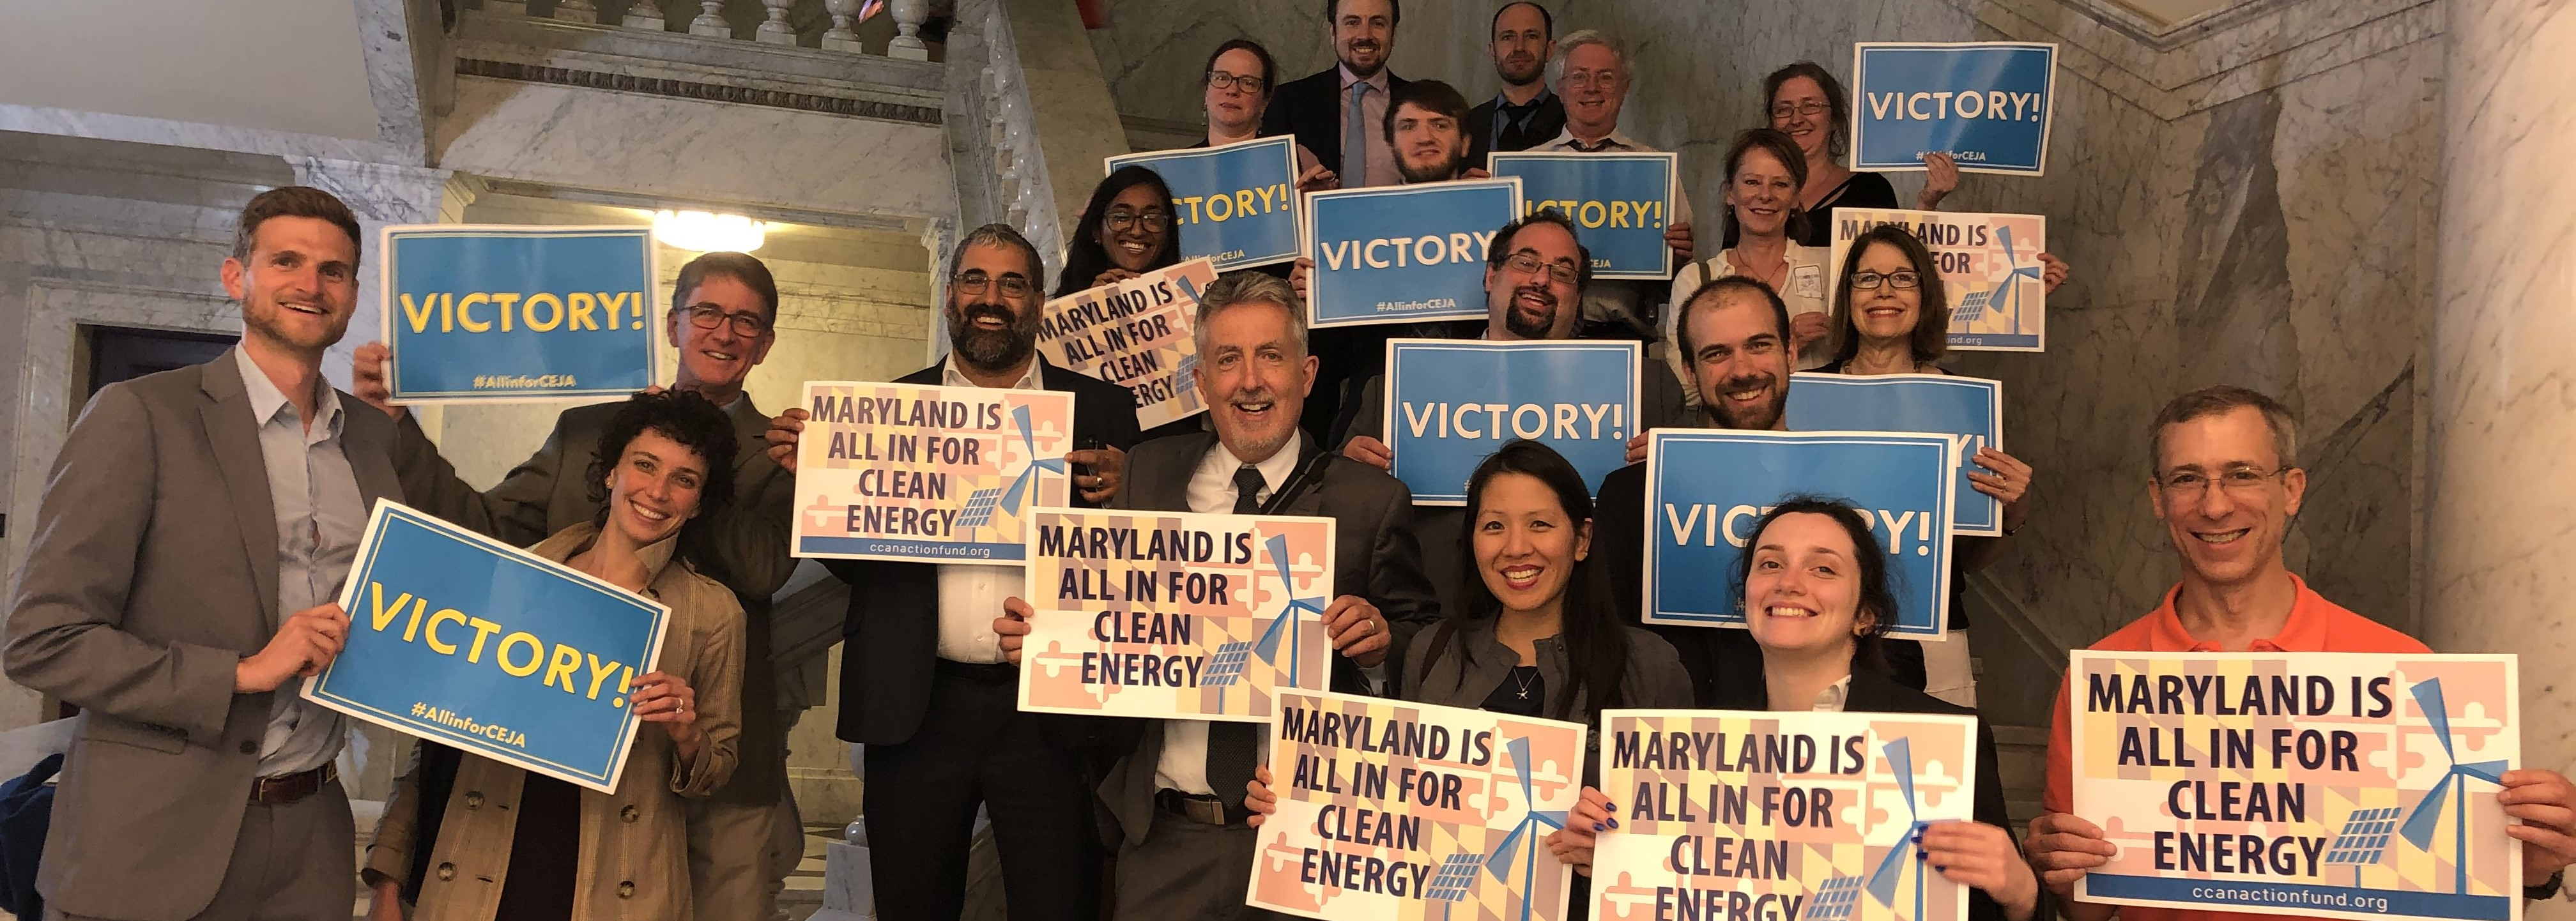 CCAN staff, interns and supporters pose for a victory shot right after the passage of the Clean Energy Jobs Act.